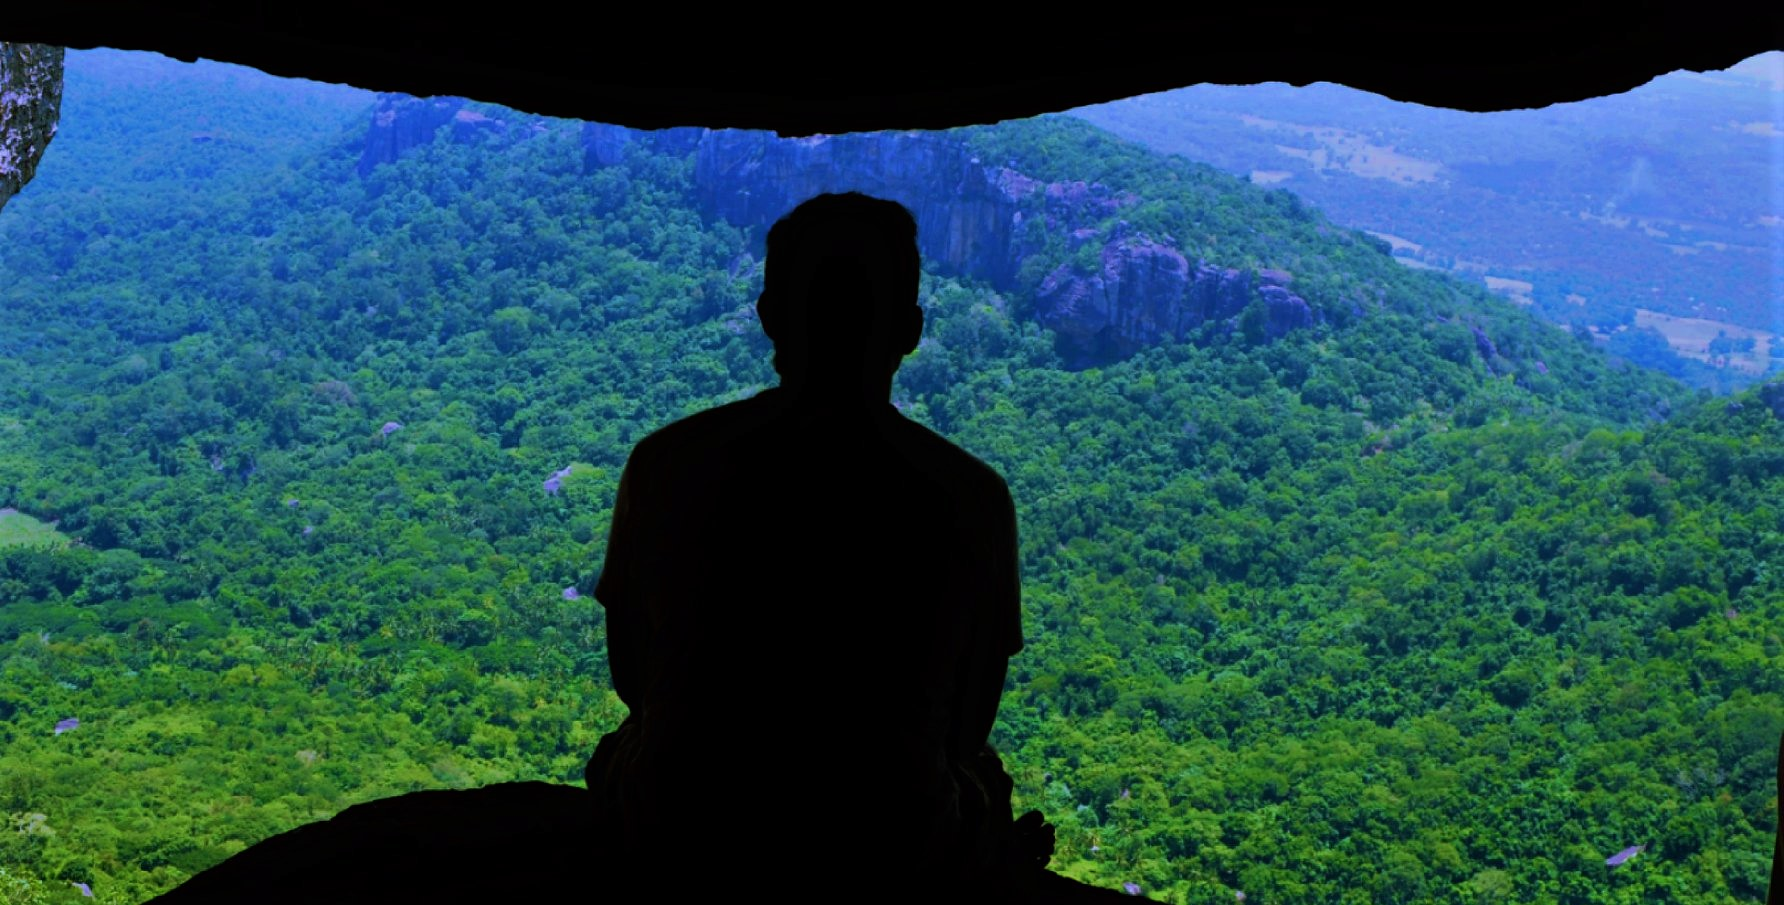 A man sitting in a cave looking at the landscape